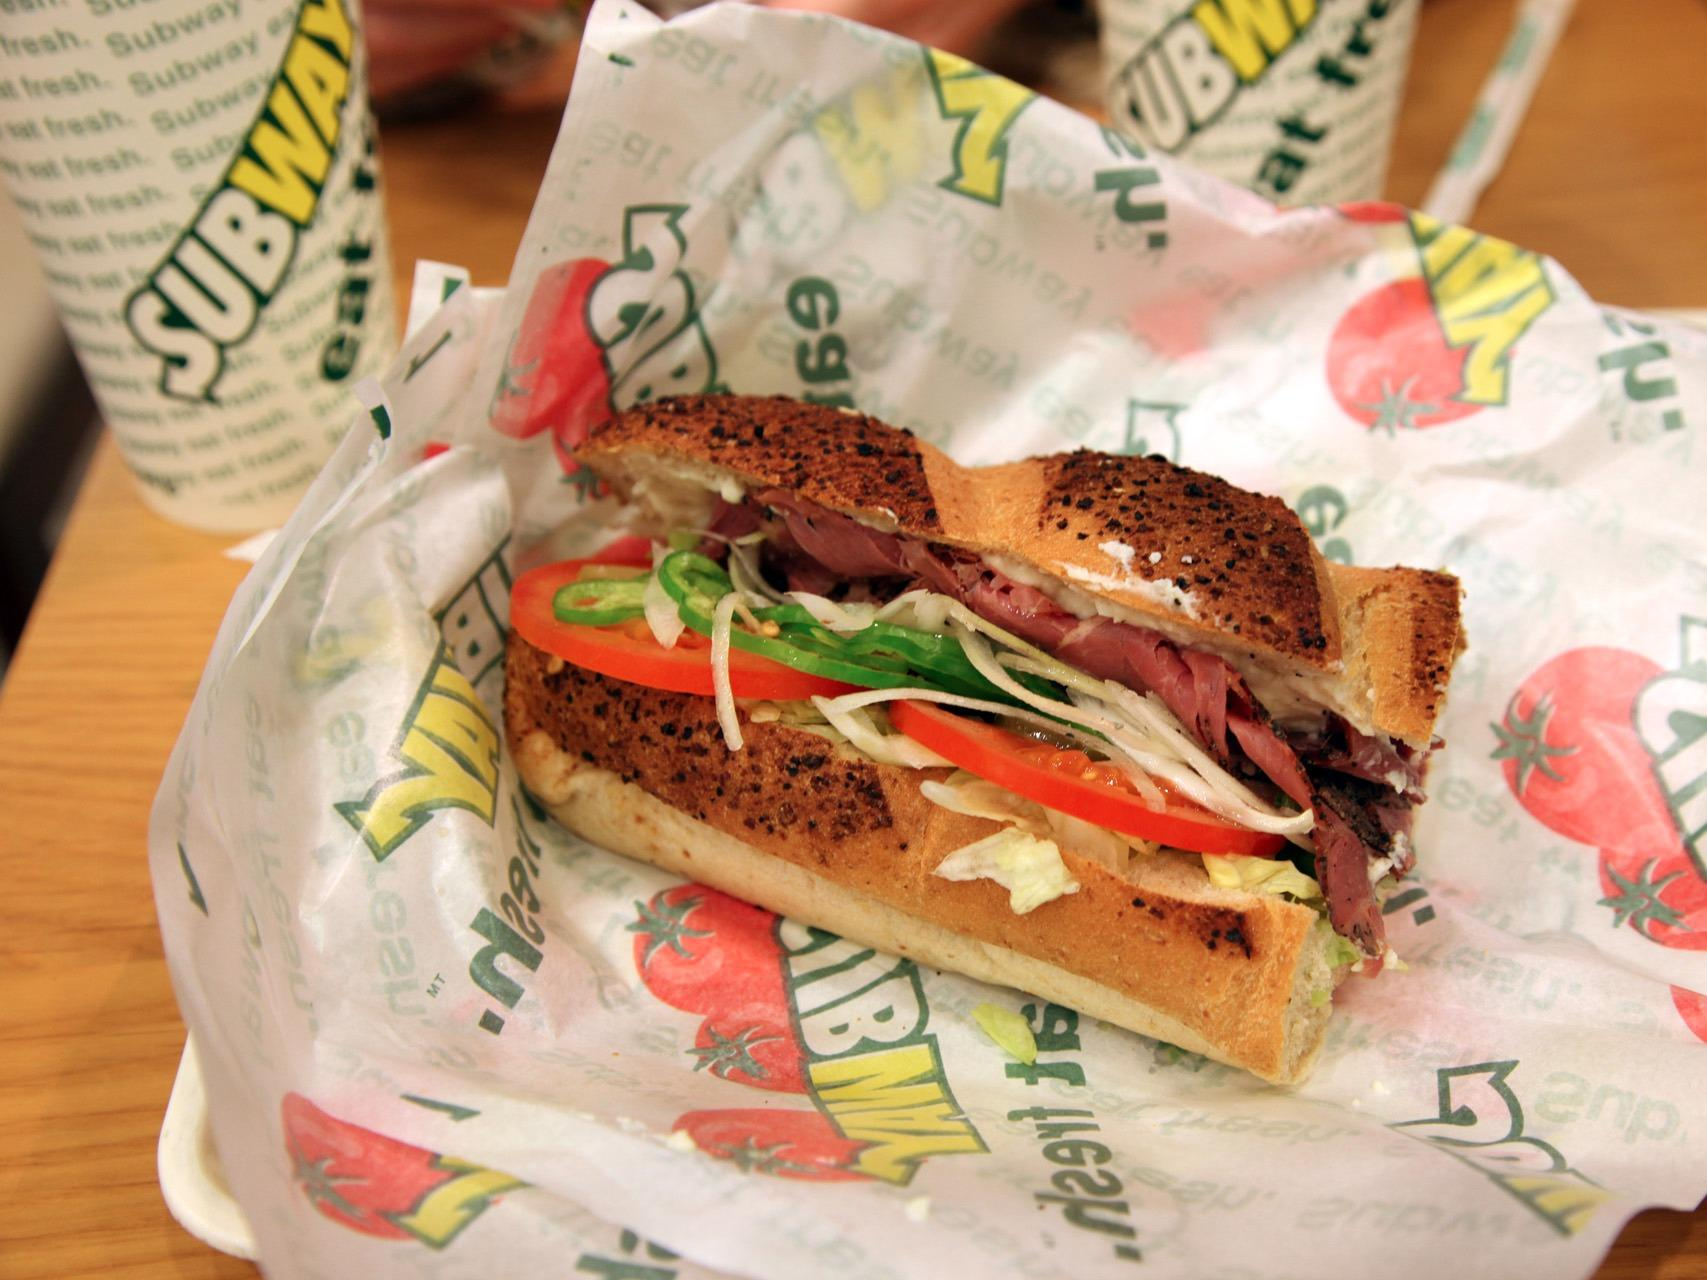 Subway is considering making 2 drastic changes to save its business